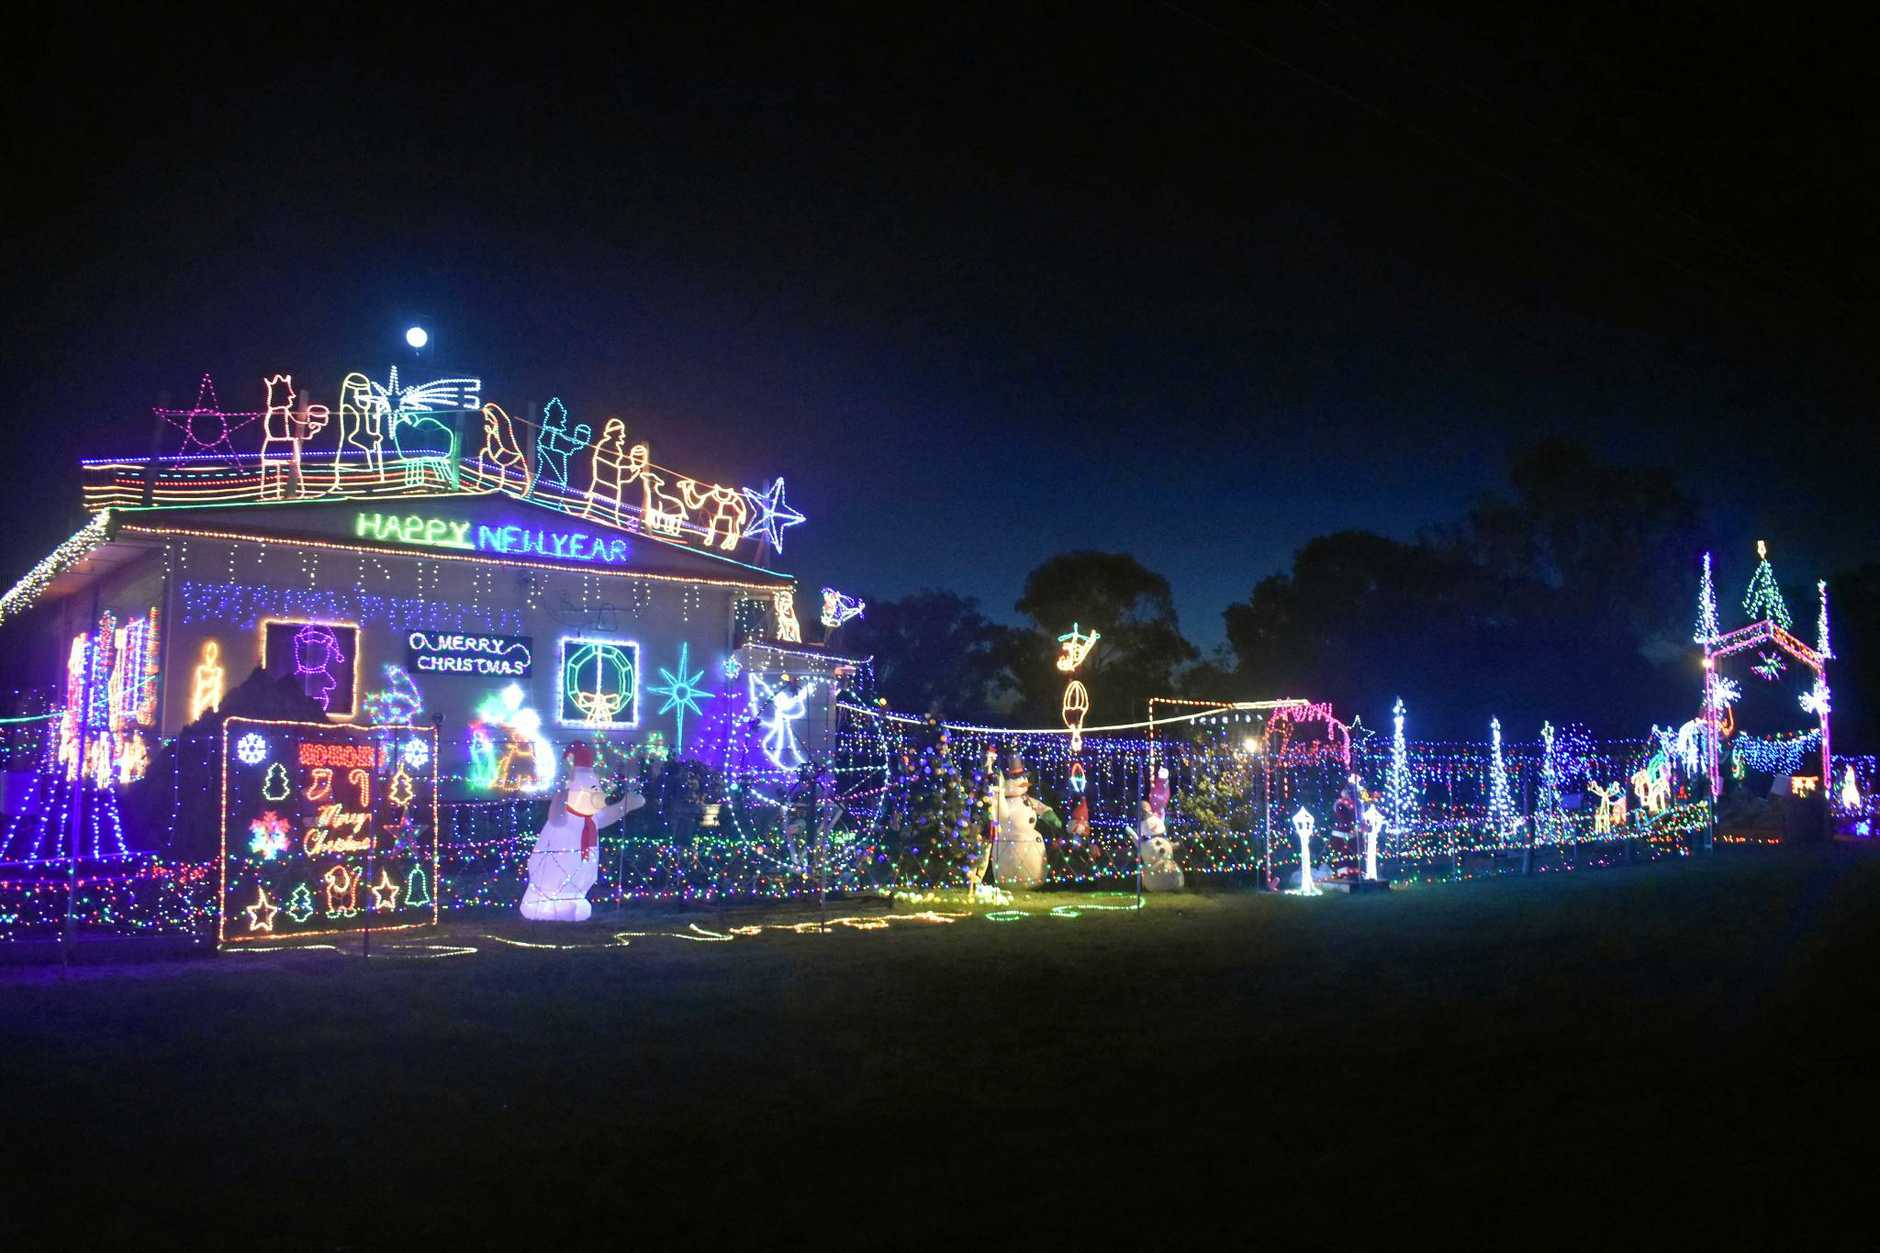 WONDERLAND: 28 Etty Street took out first prize in the house and garden categories for their amazing Christmas light display.